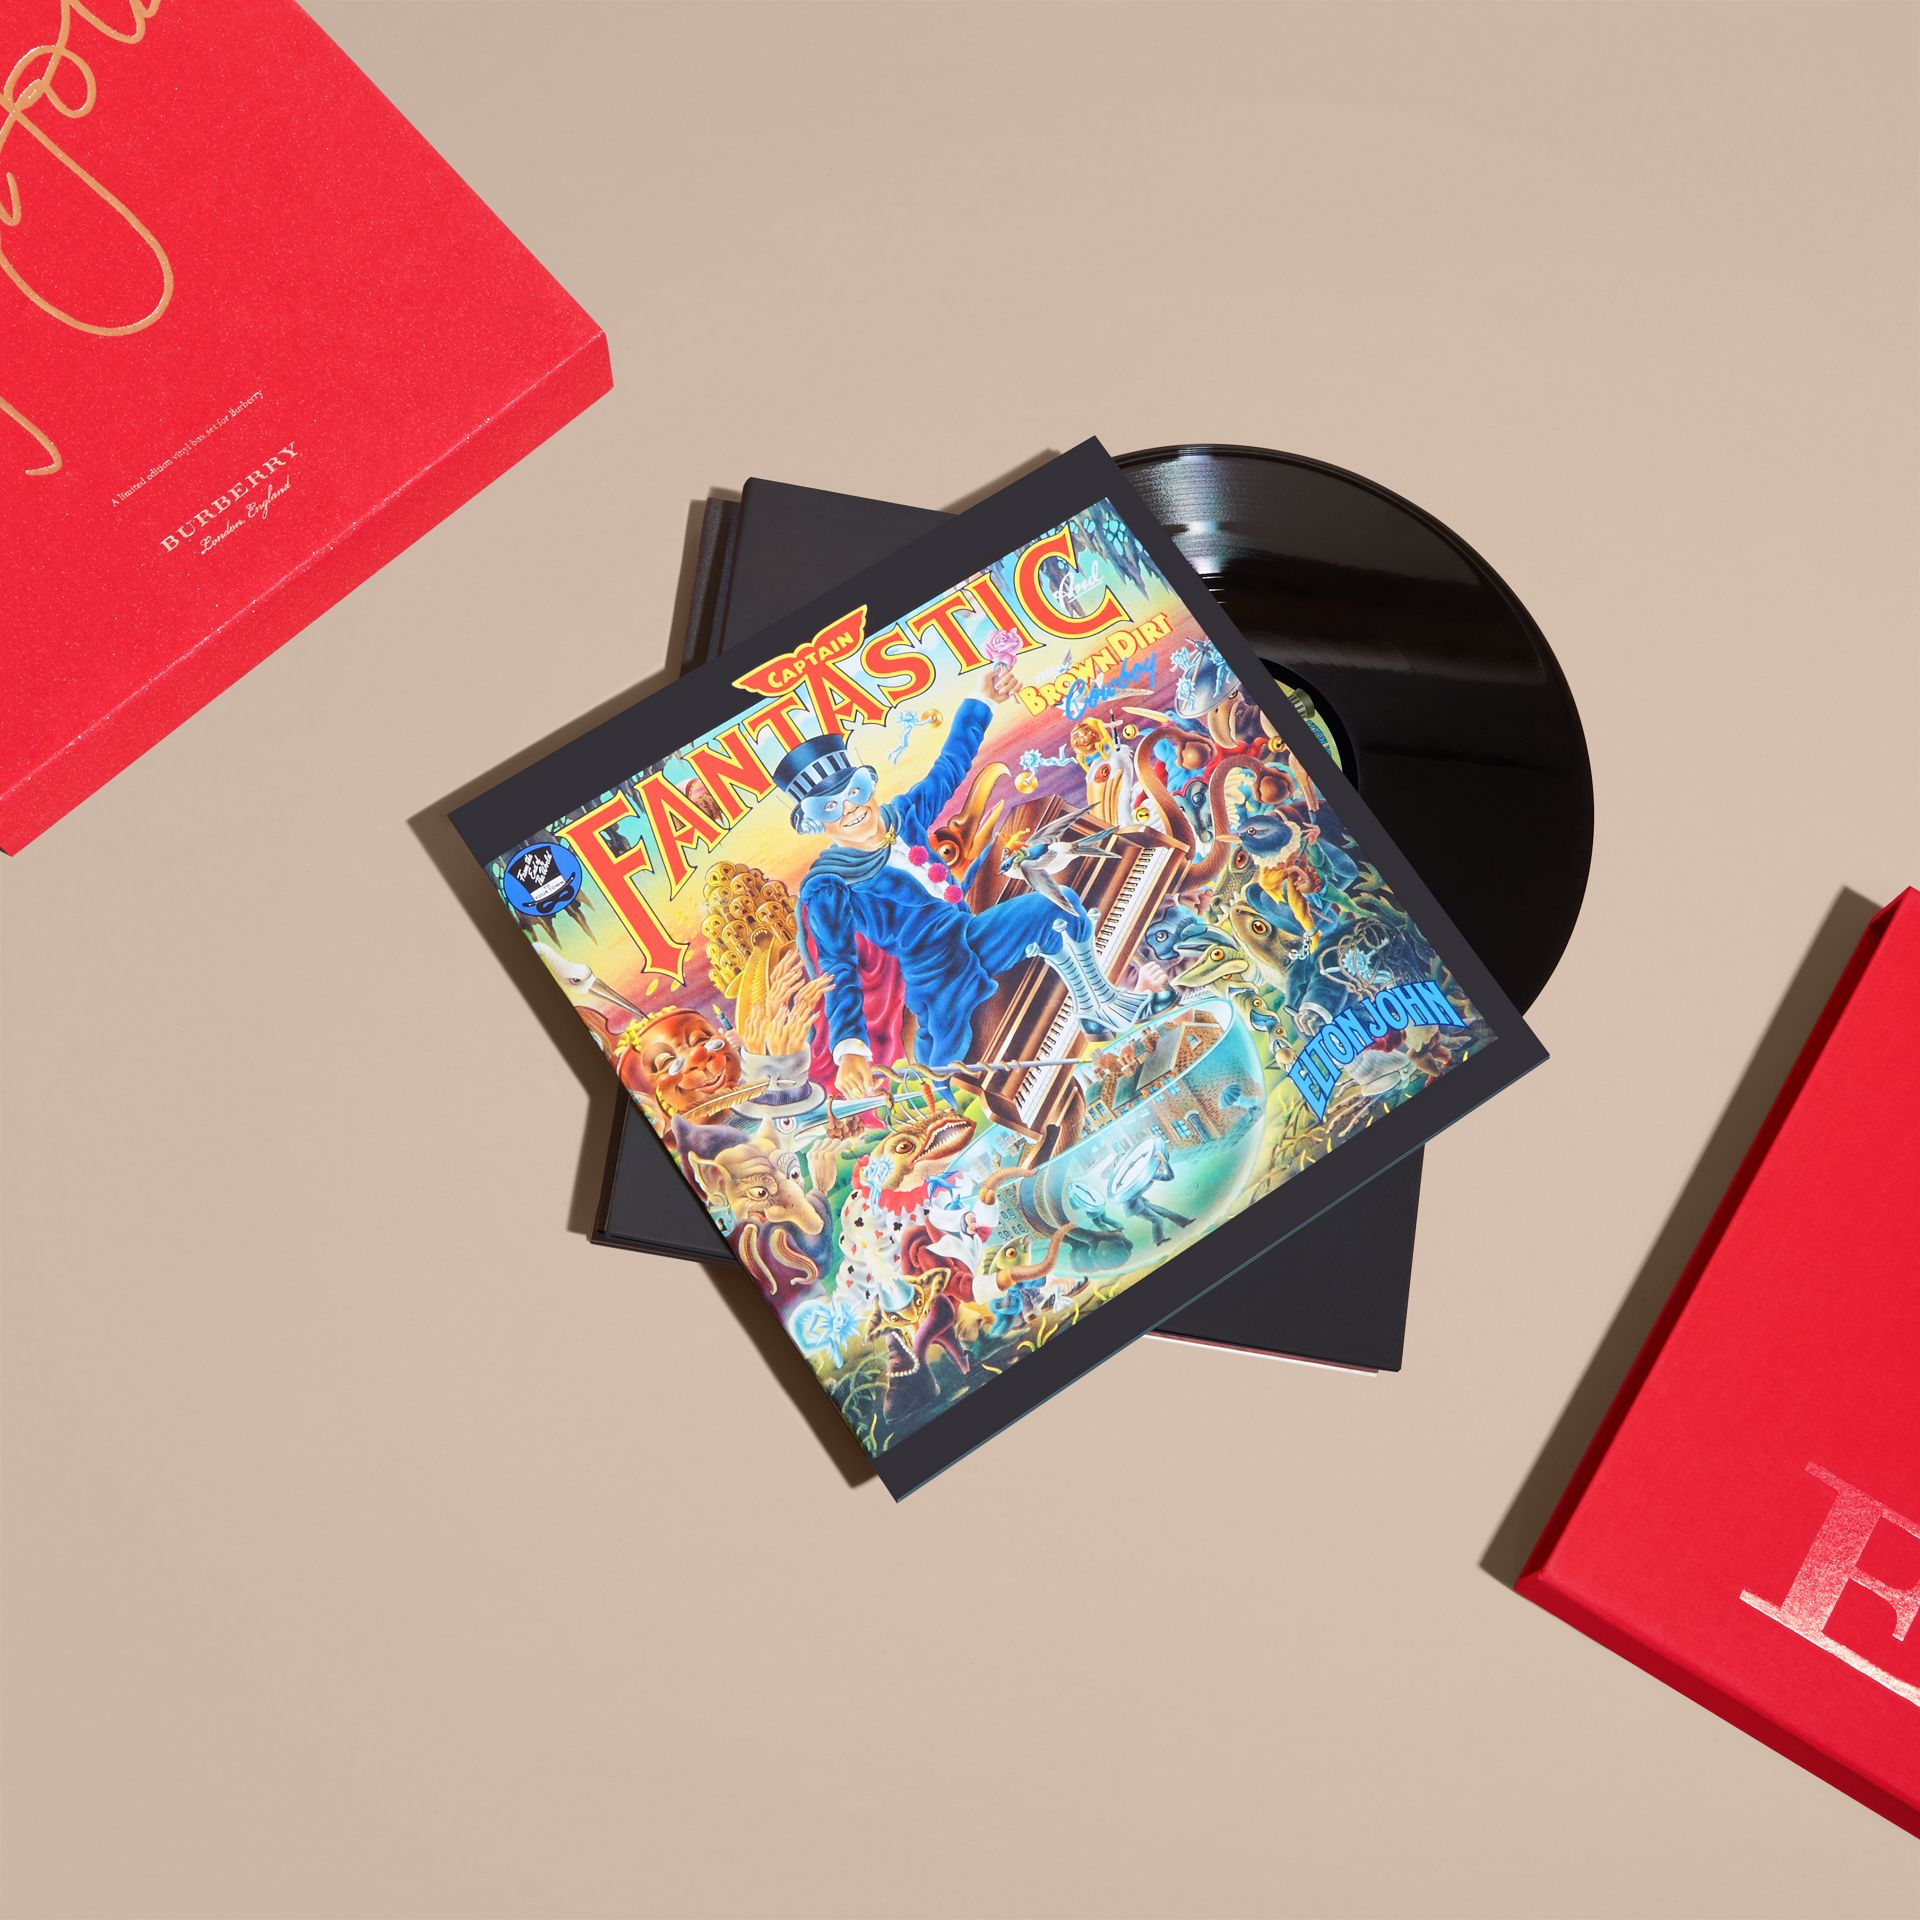 Multicolour Elton John: A Limited Edition Vinyl Box Set for Burberry - gallery image 6